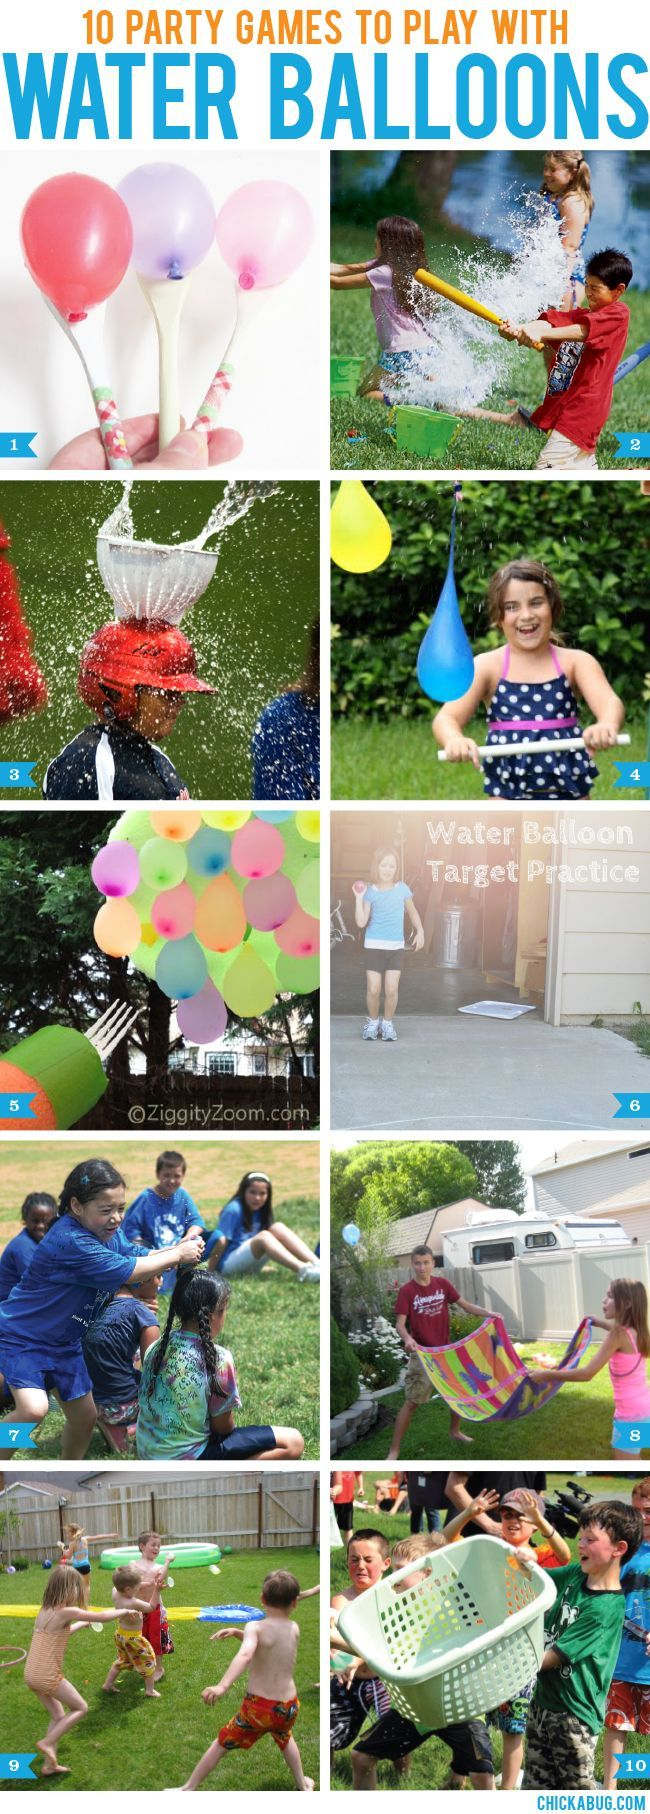 10 fun party games you can play with water balloons fun for Balloon party games